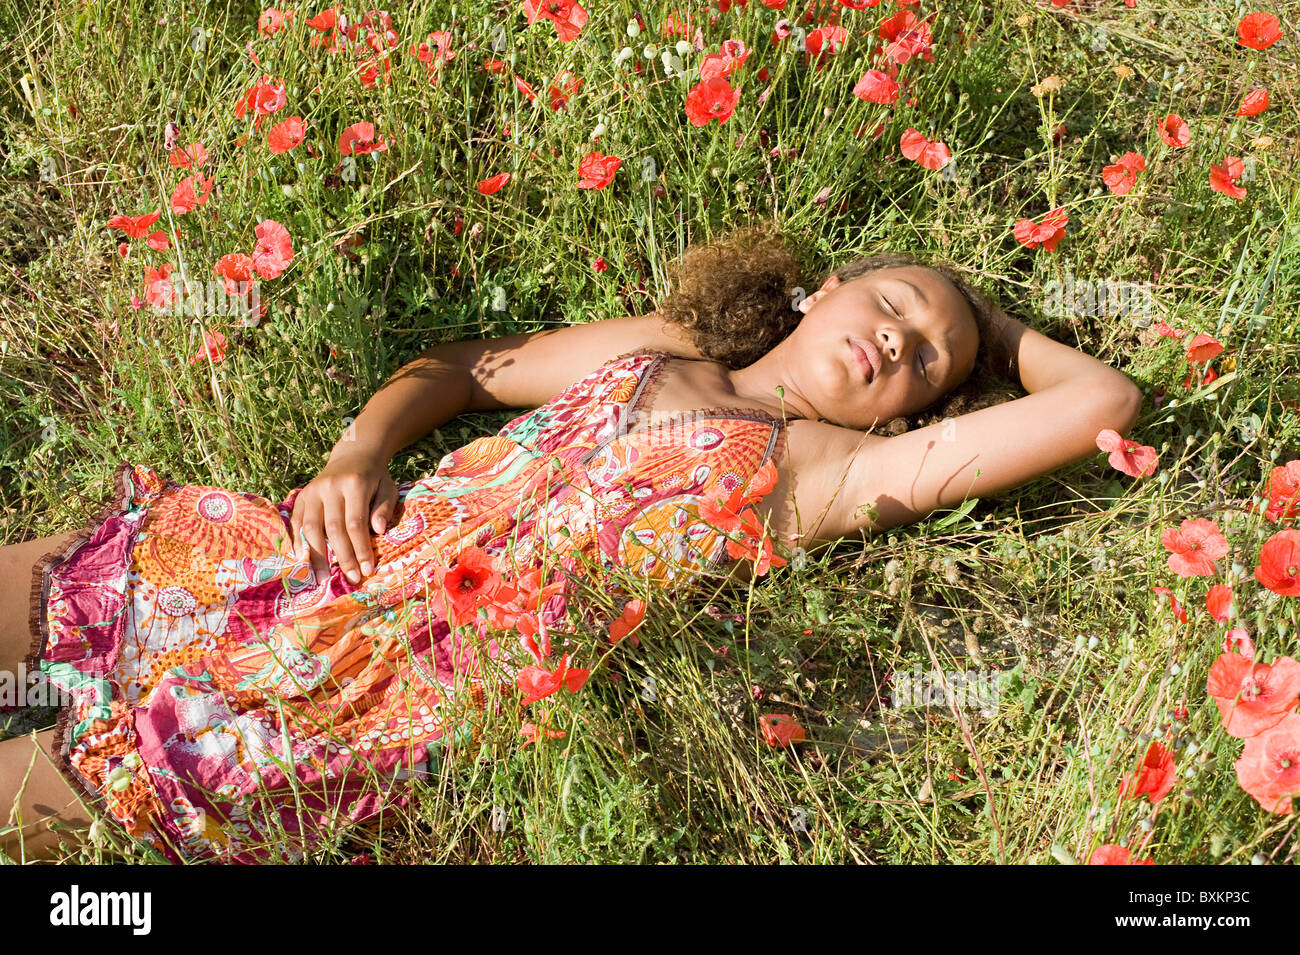 Young girl lying in poppy field - Stock Image